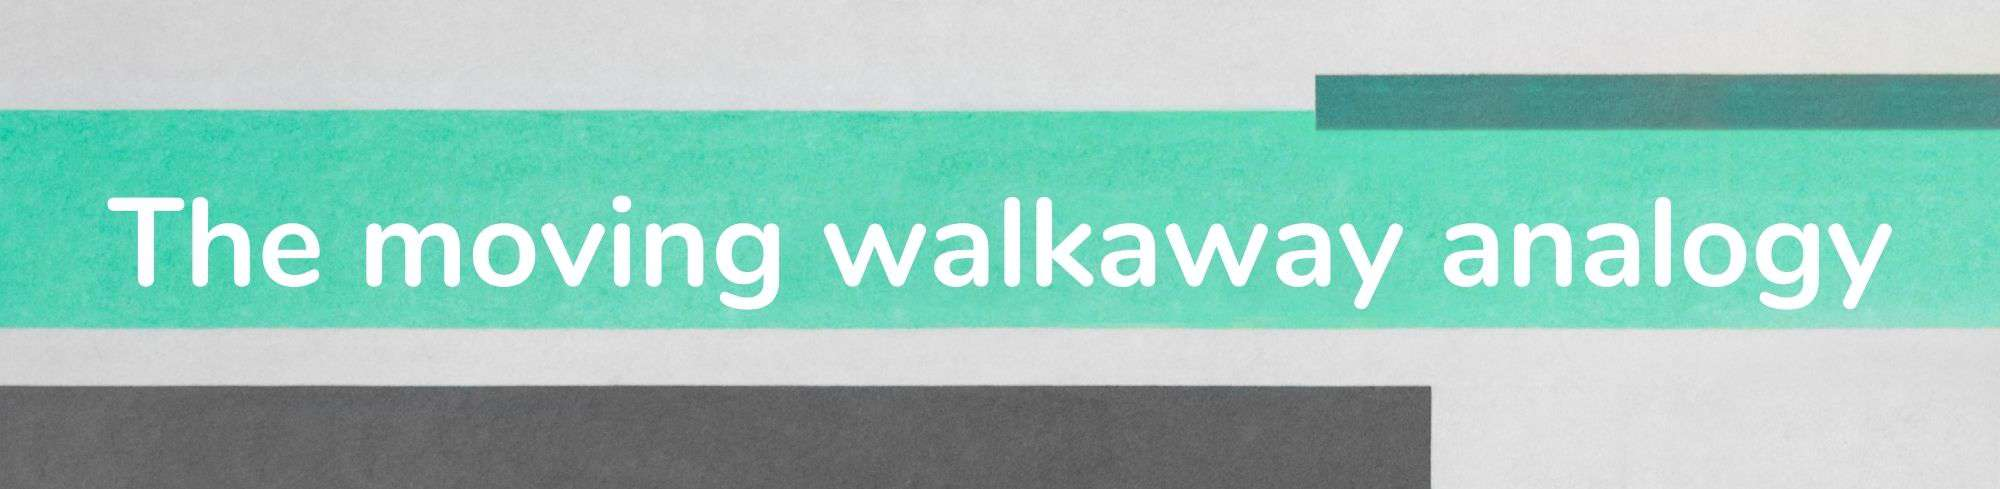 The moving walkway analogy